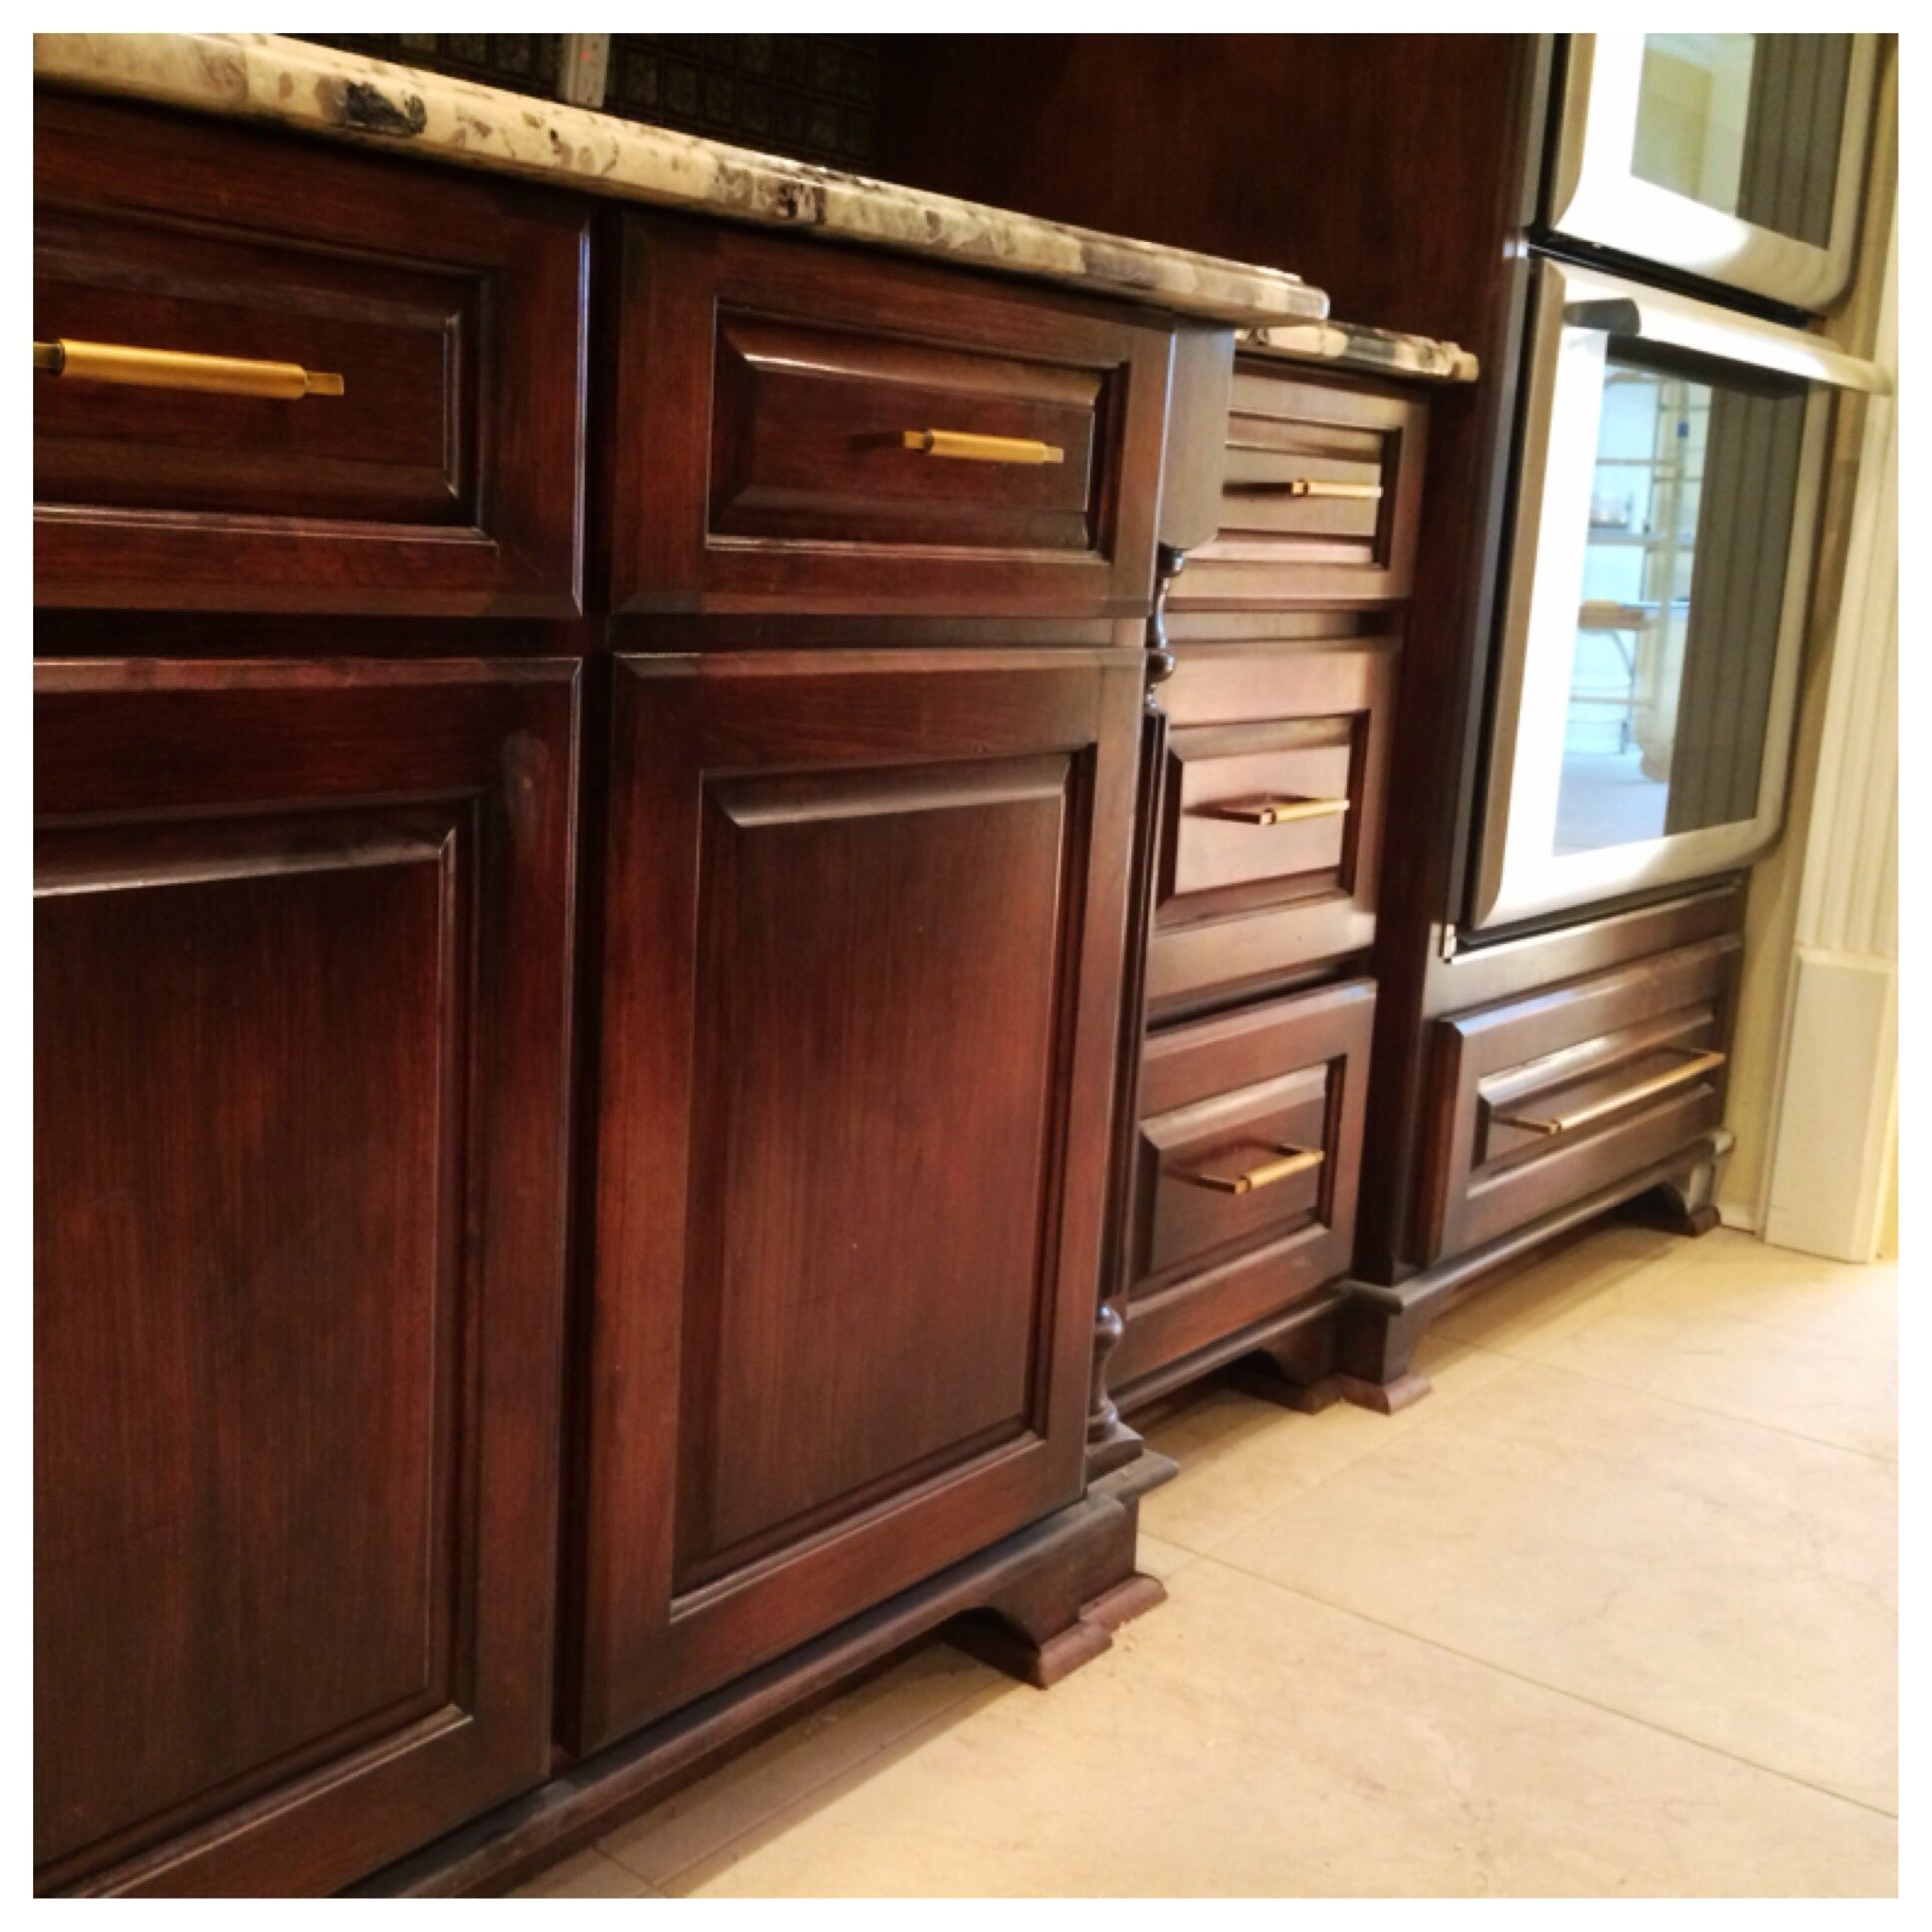 Awesome Cabinet Stains and Glazes